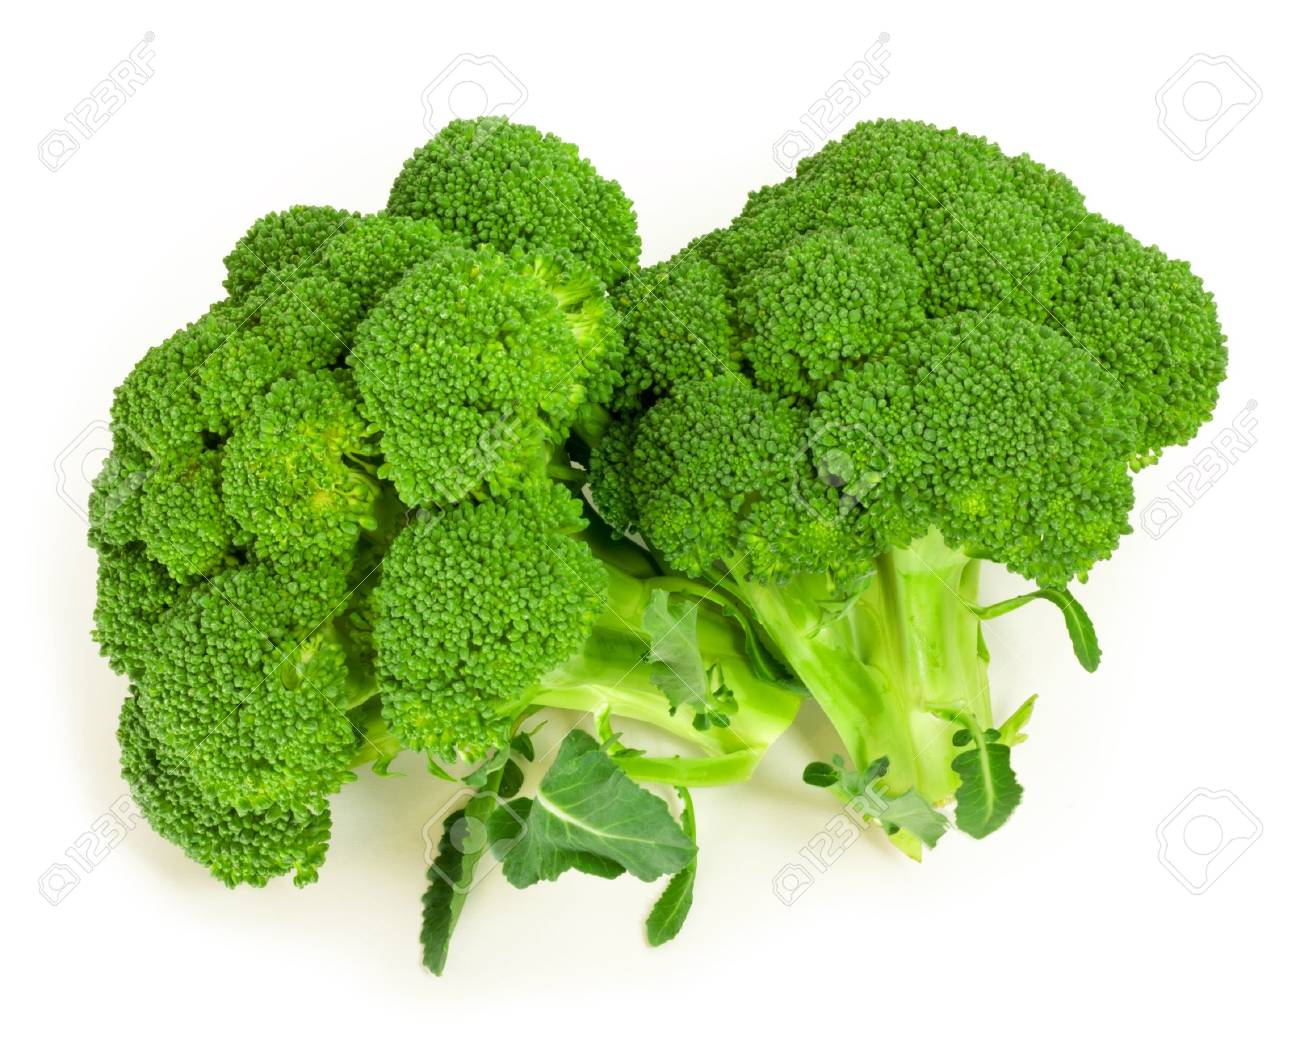 broccoli isolated on white - 17960877